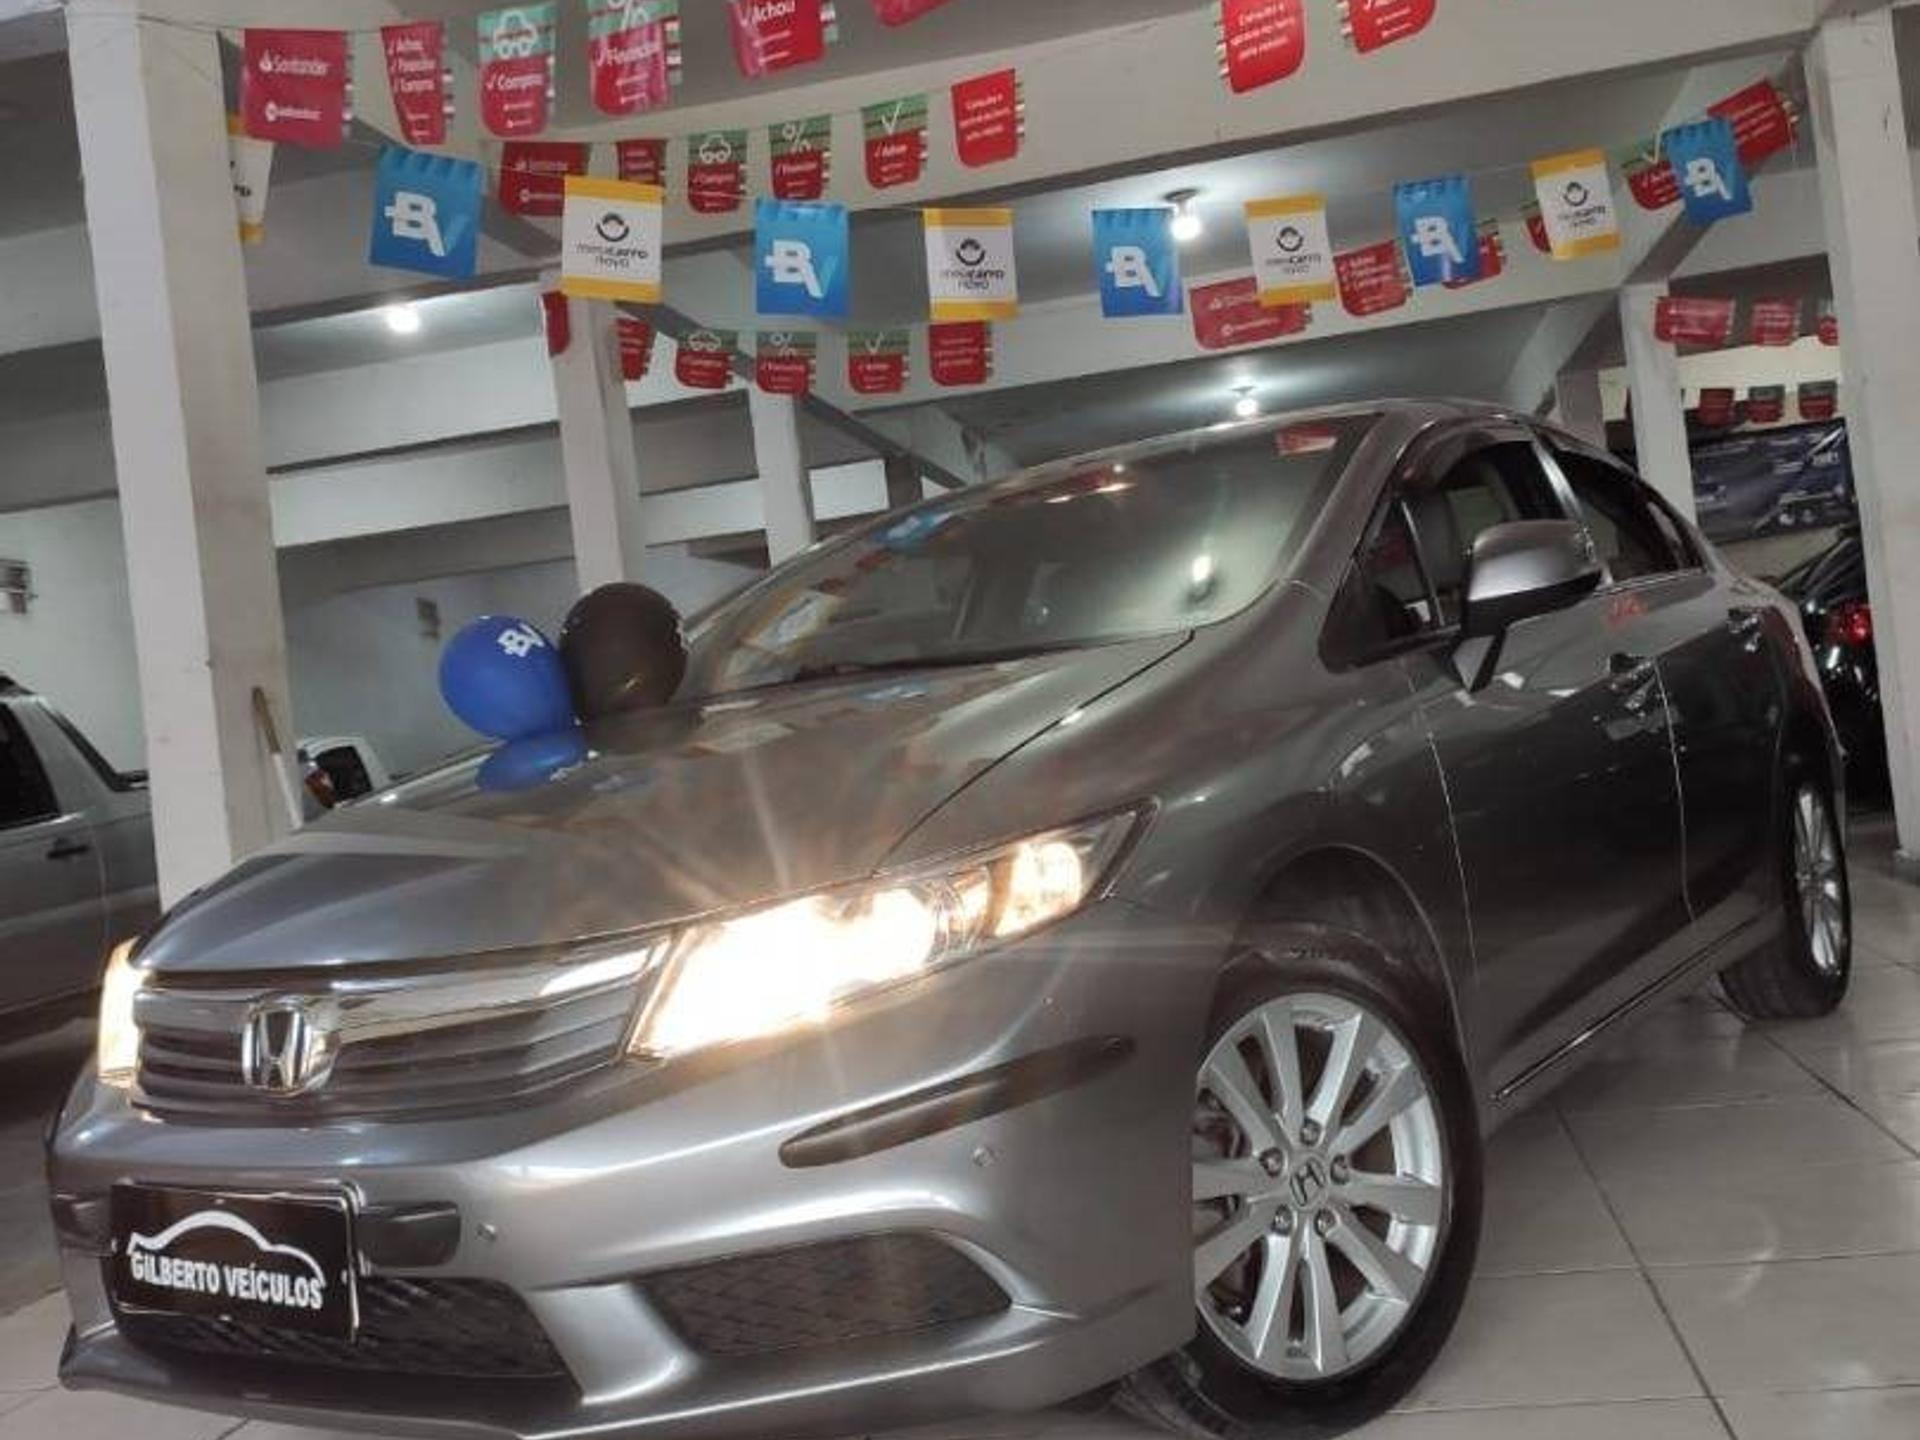 Honda Civic 1.8 Lxs 16v Flex 4p Manual Wmimagem17511380519